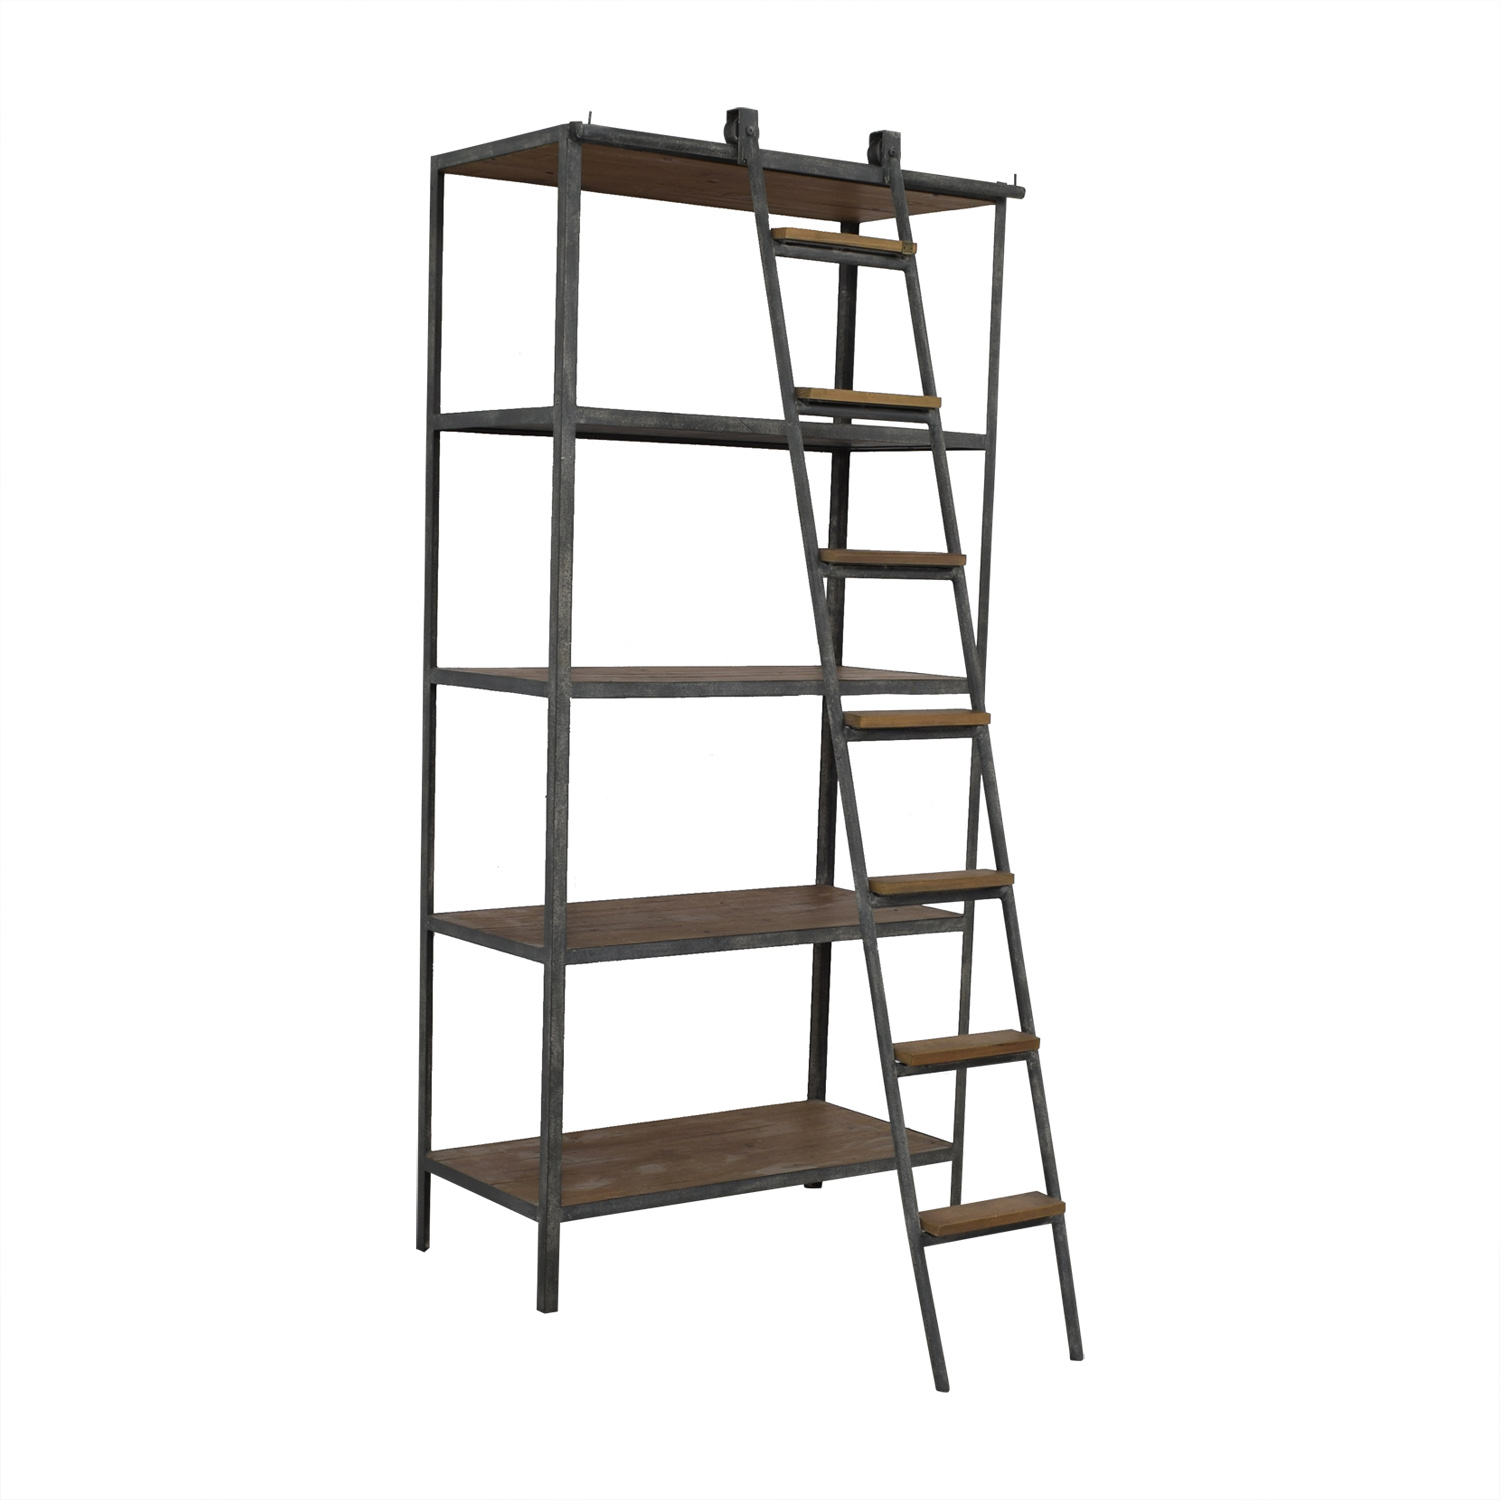 buy ABC Carpet & Home Book Shelf with Ladder ABC Carpet & Home Bookcases & Shelving